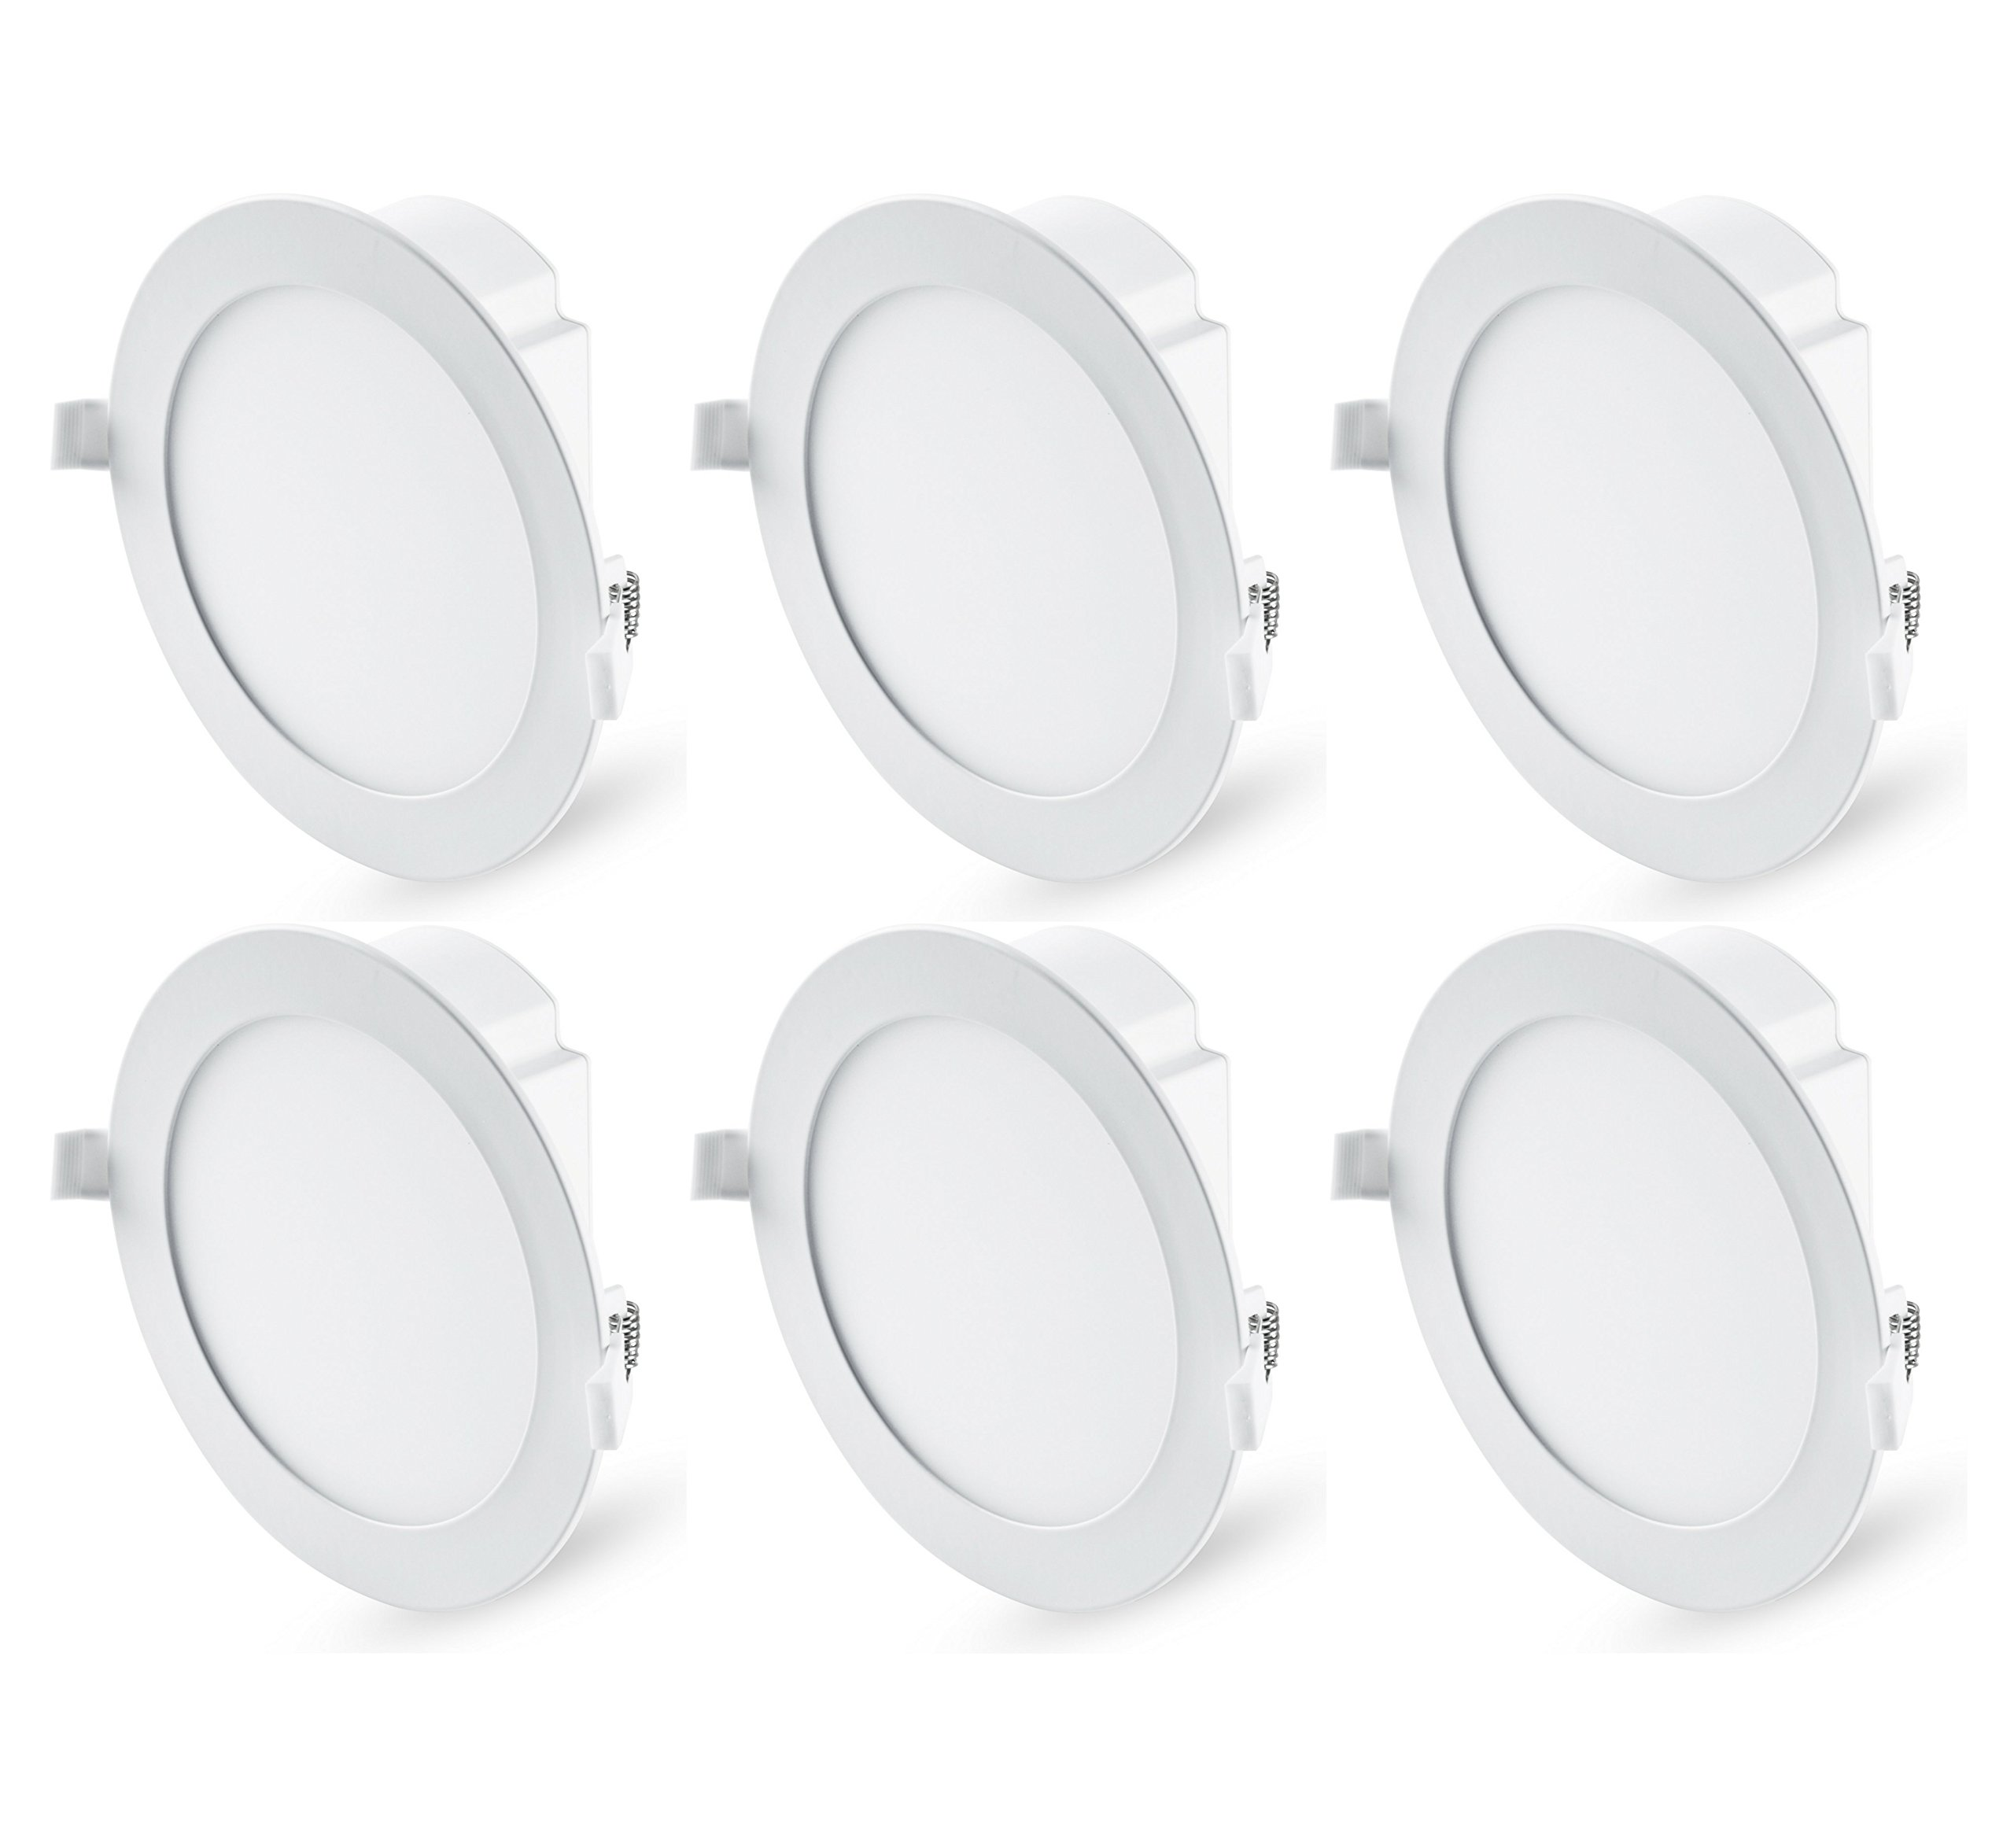 "Hyperikon 6"" Recessed LED Downlight with Junction Box, Dimmable, 11.6W (65W Equivalent), Slim Retrofit Airtight Downlight, 5000K (Crystal White Glow), ENERGY STAR, UL - For Dry/Damp Locations (6 Pack)"